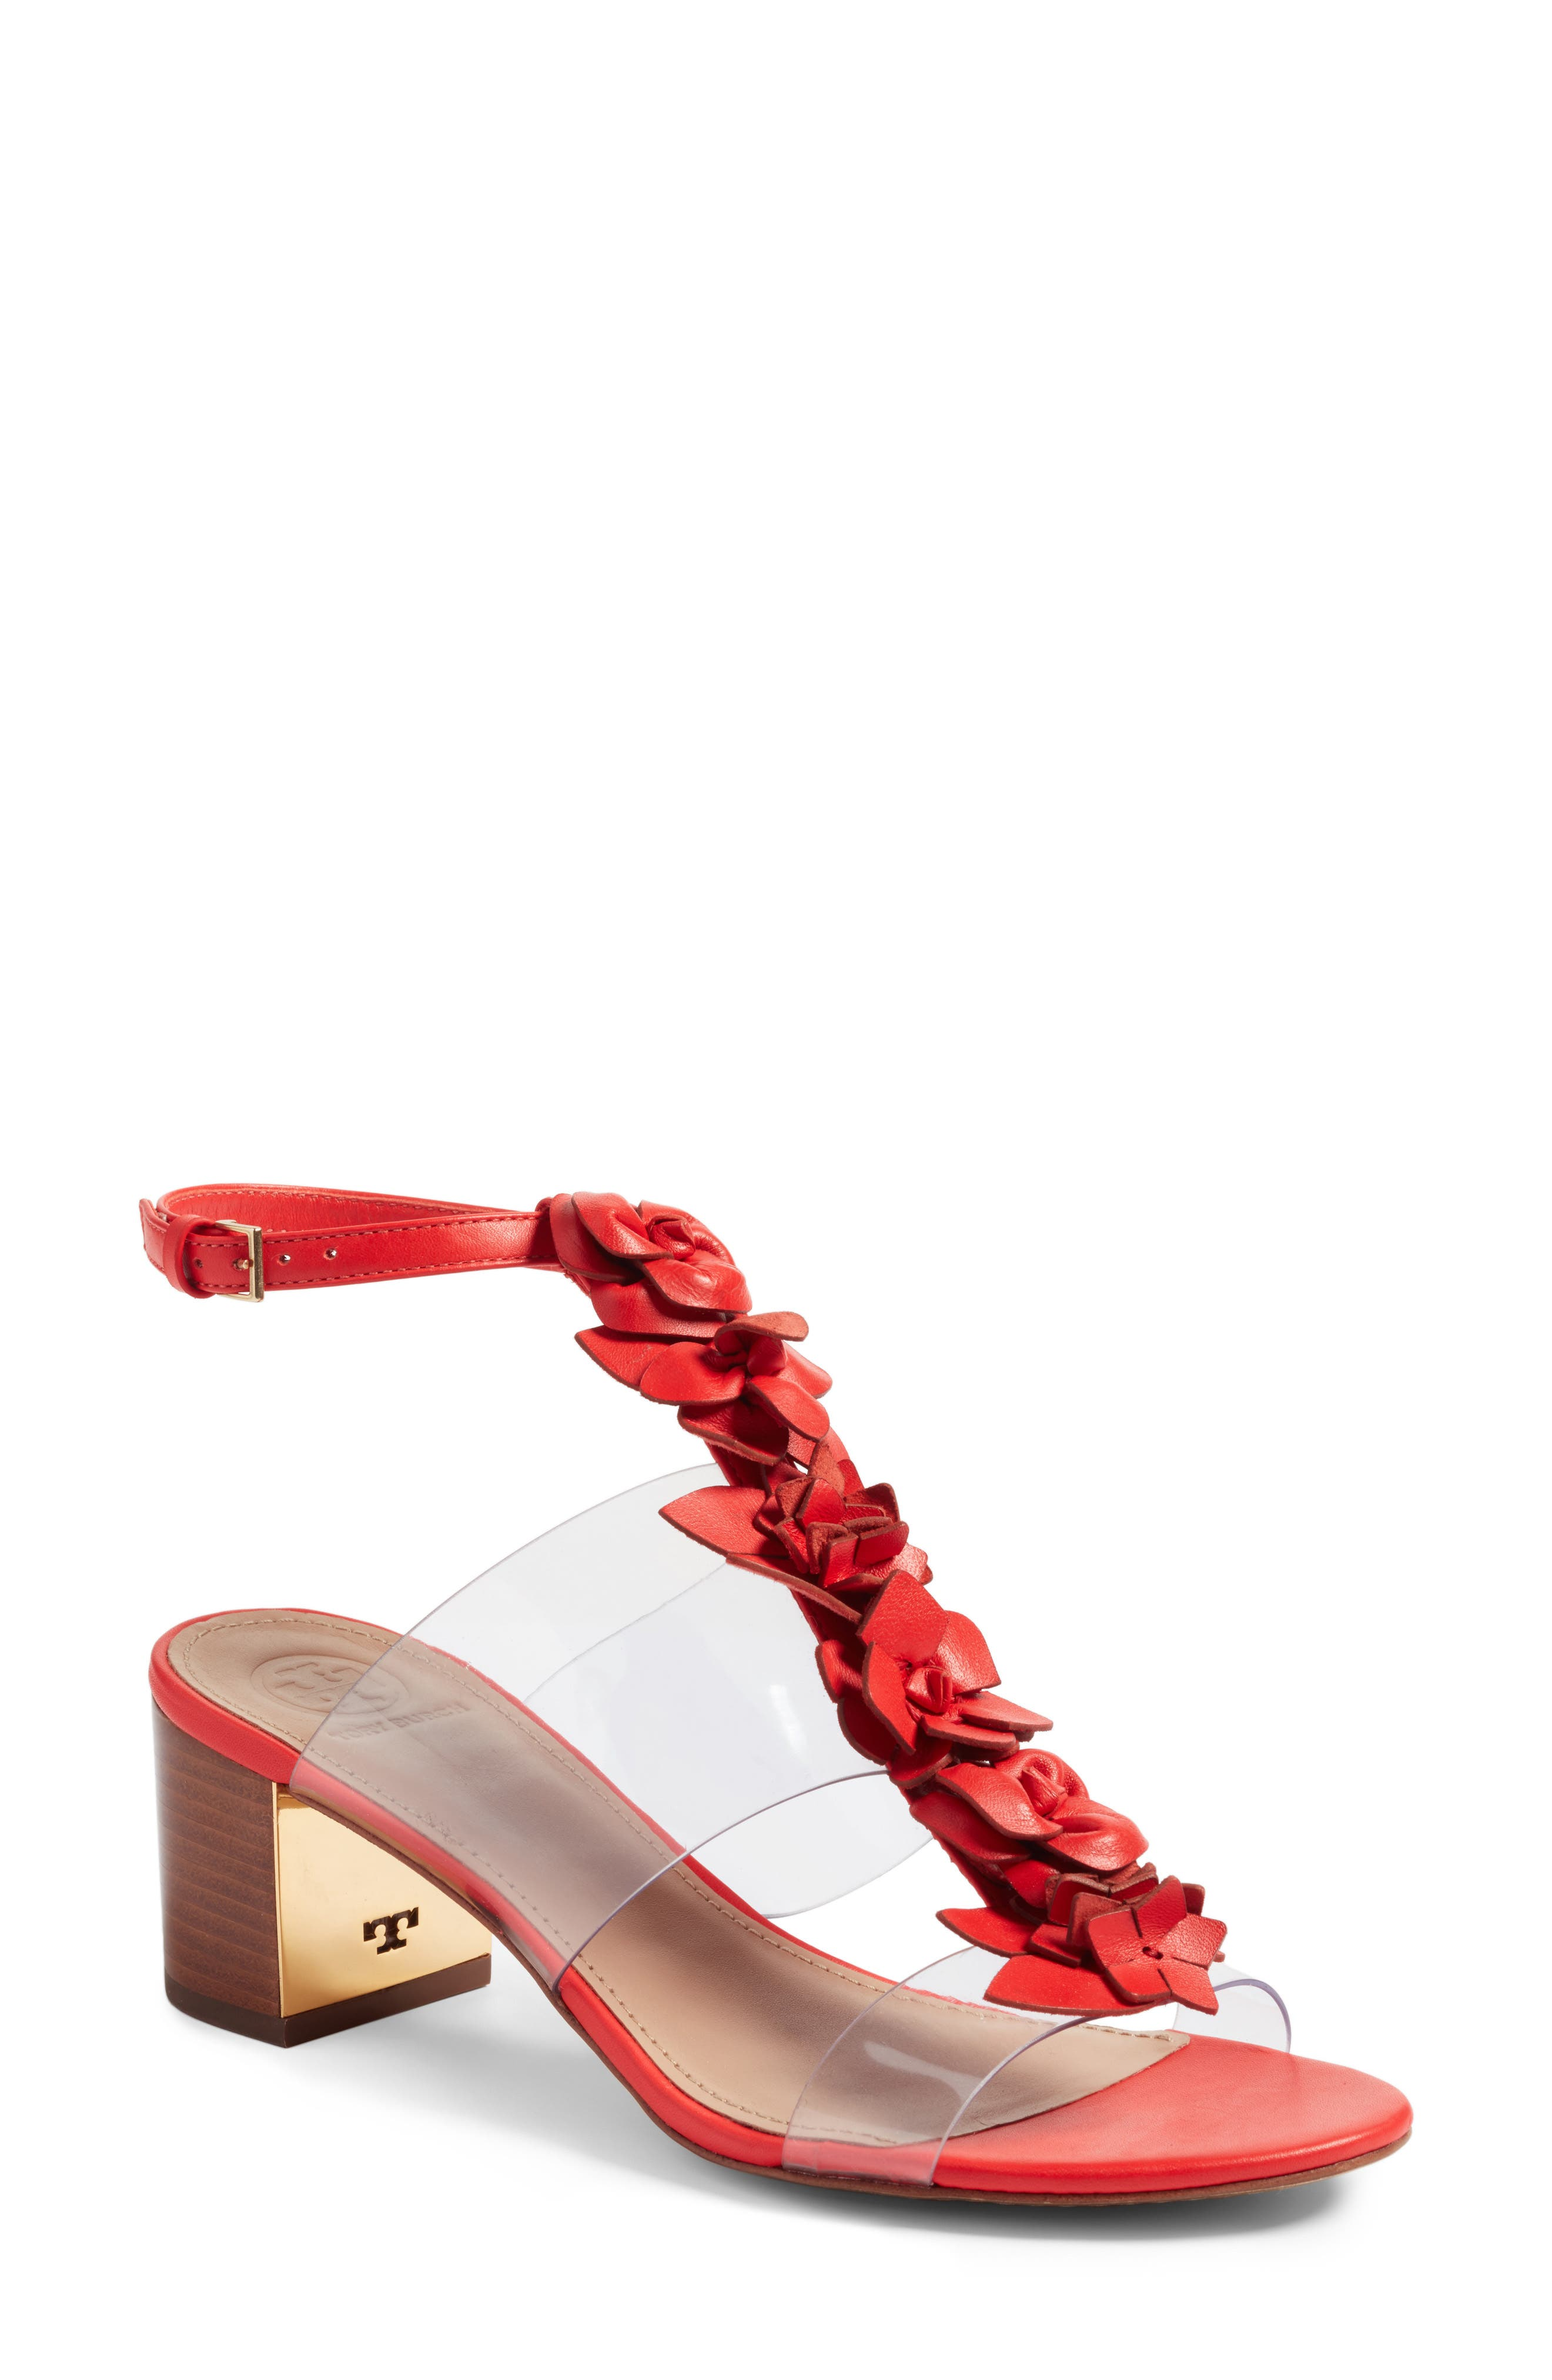 Blossom Sandal,                             Main thumbnail 1, color,                             Red Volcano/ Clear